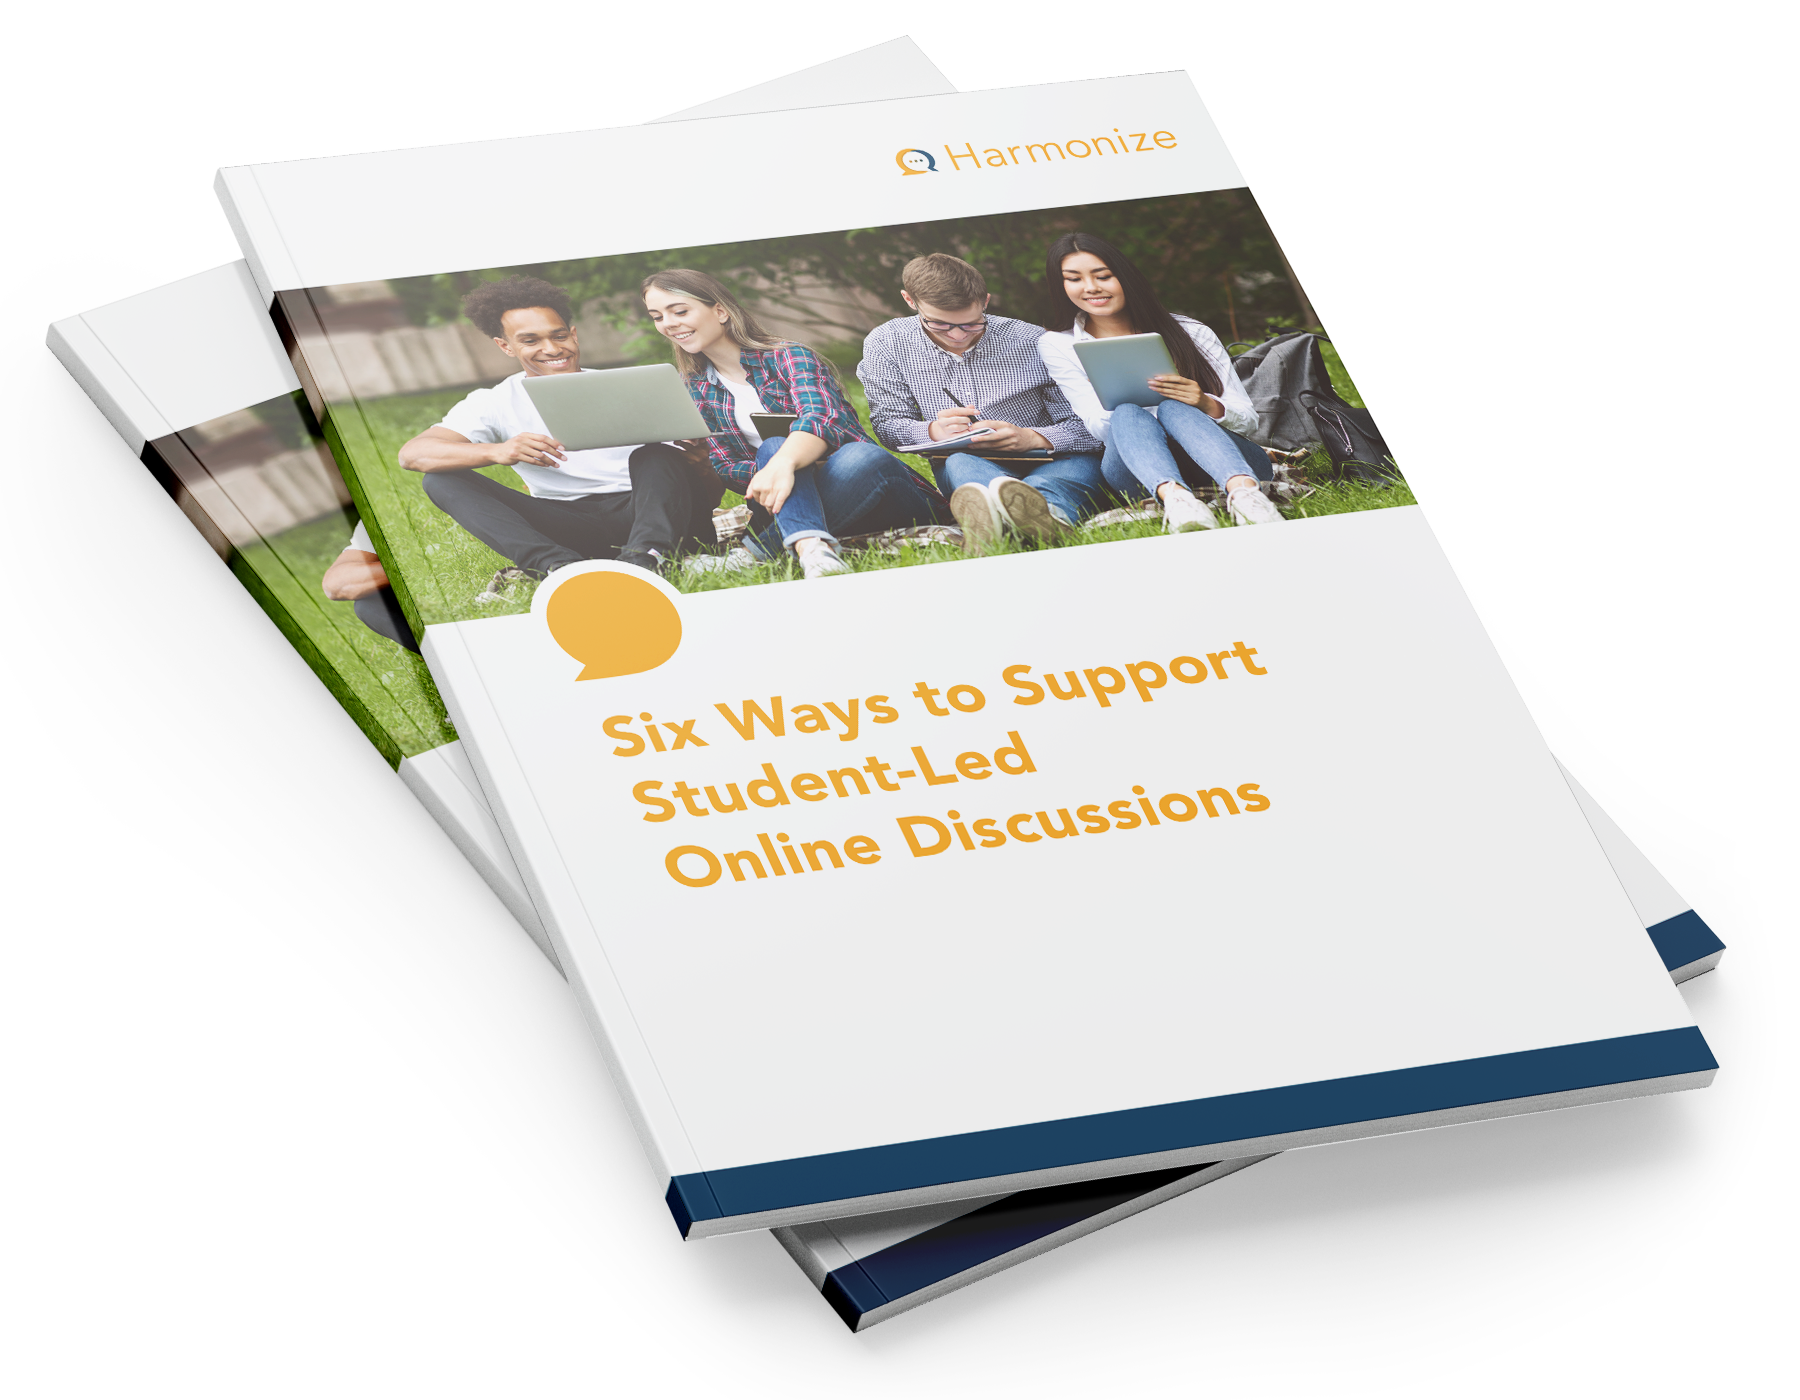 Six Ways to Support Student-Led Online Discussions